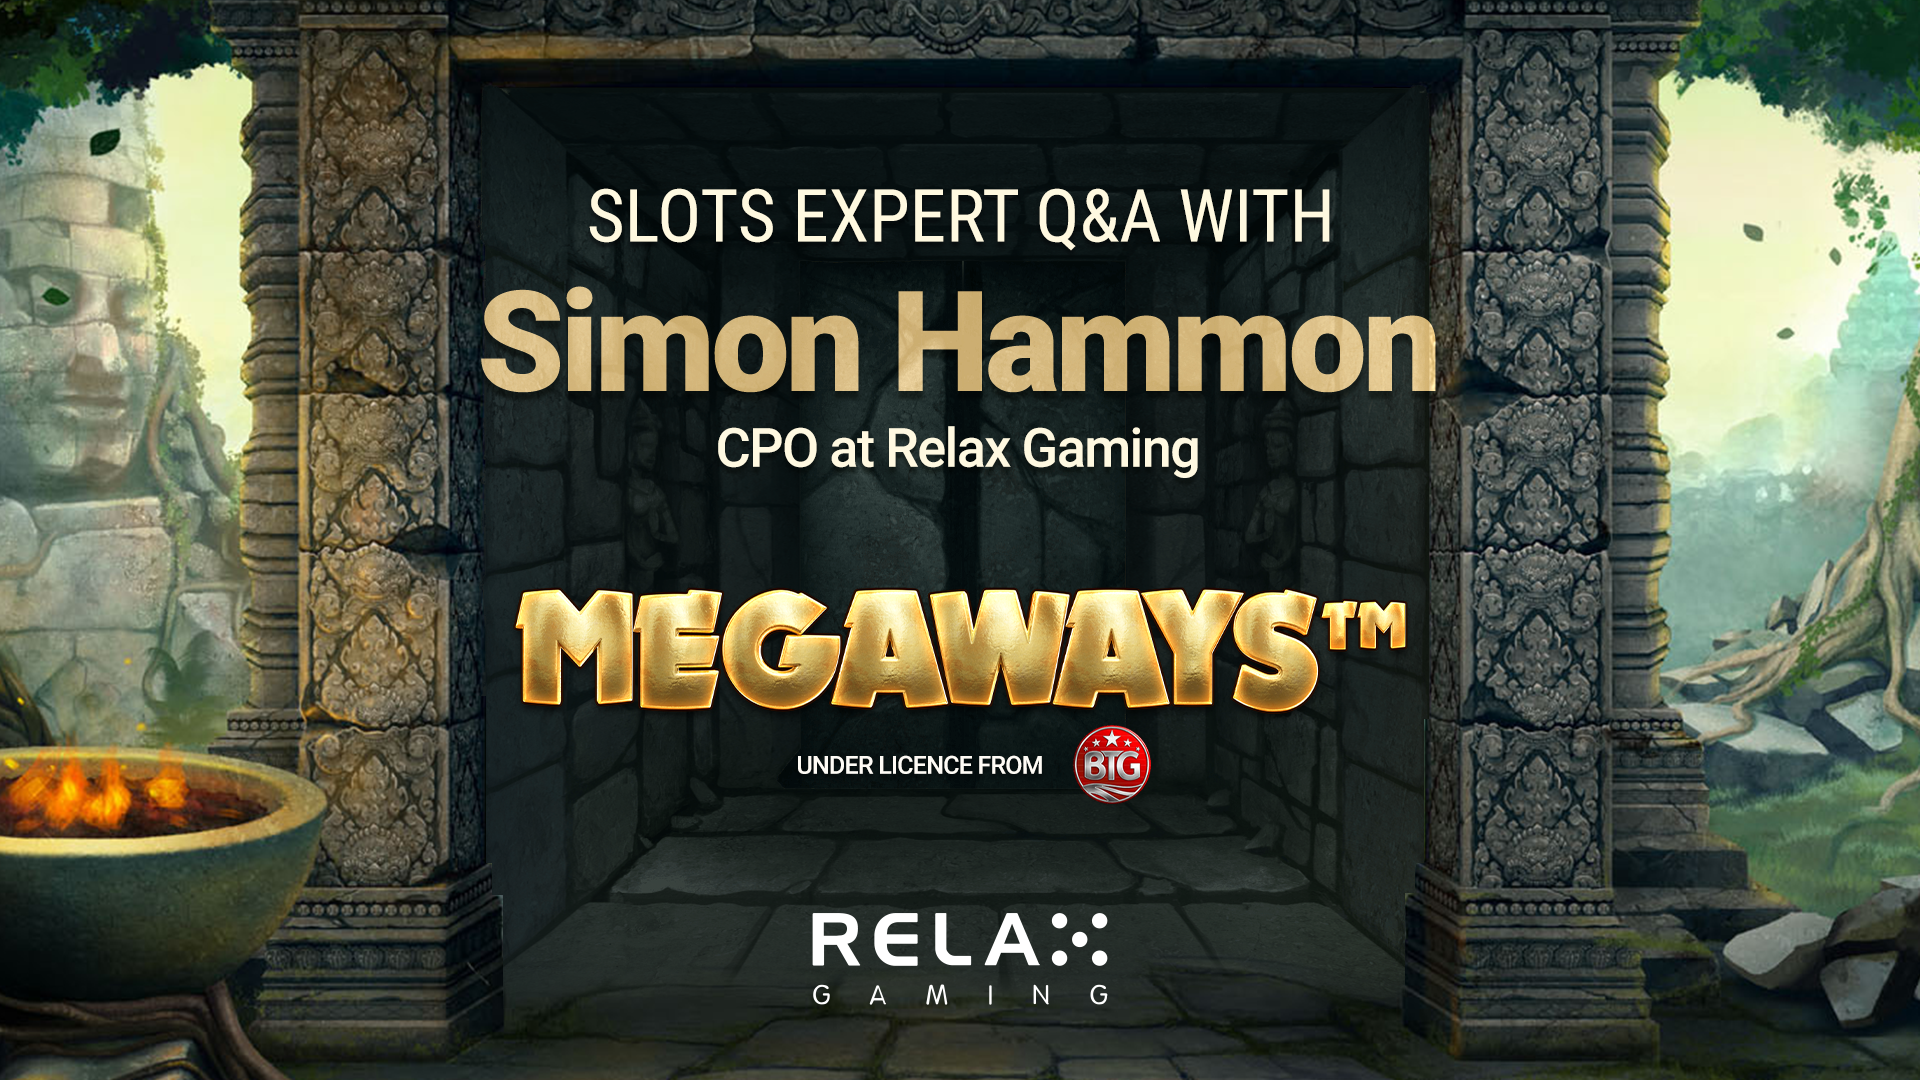 Megaways Slots Expert discusses mechanics with Relax Gaming